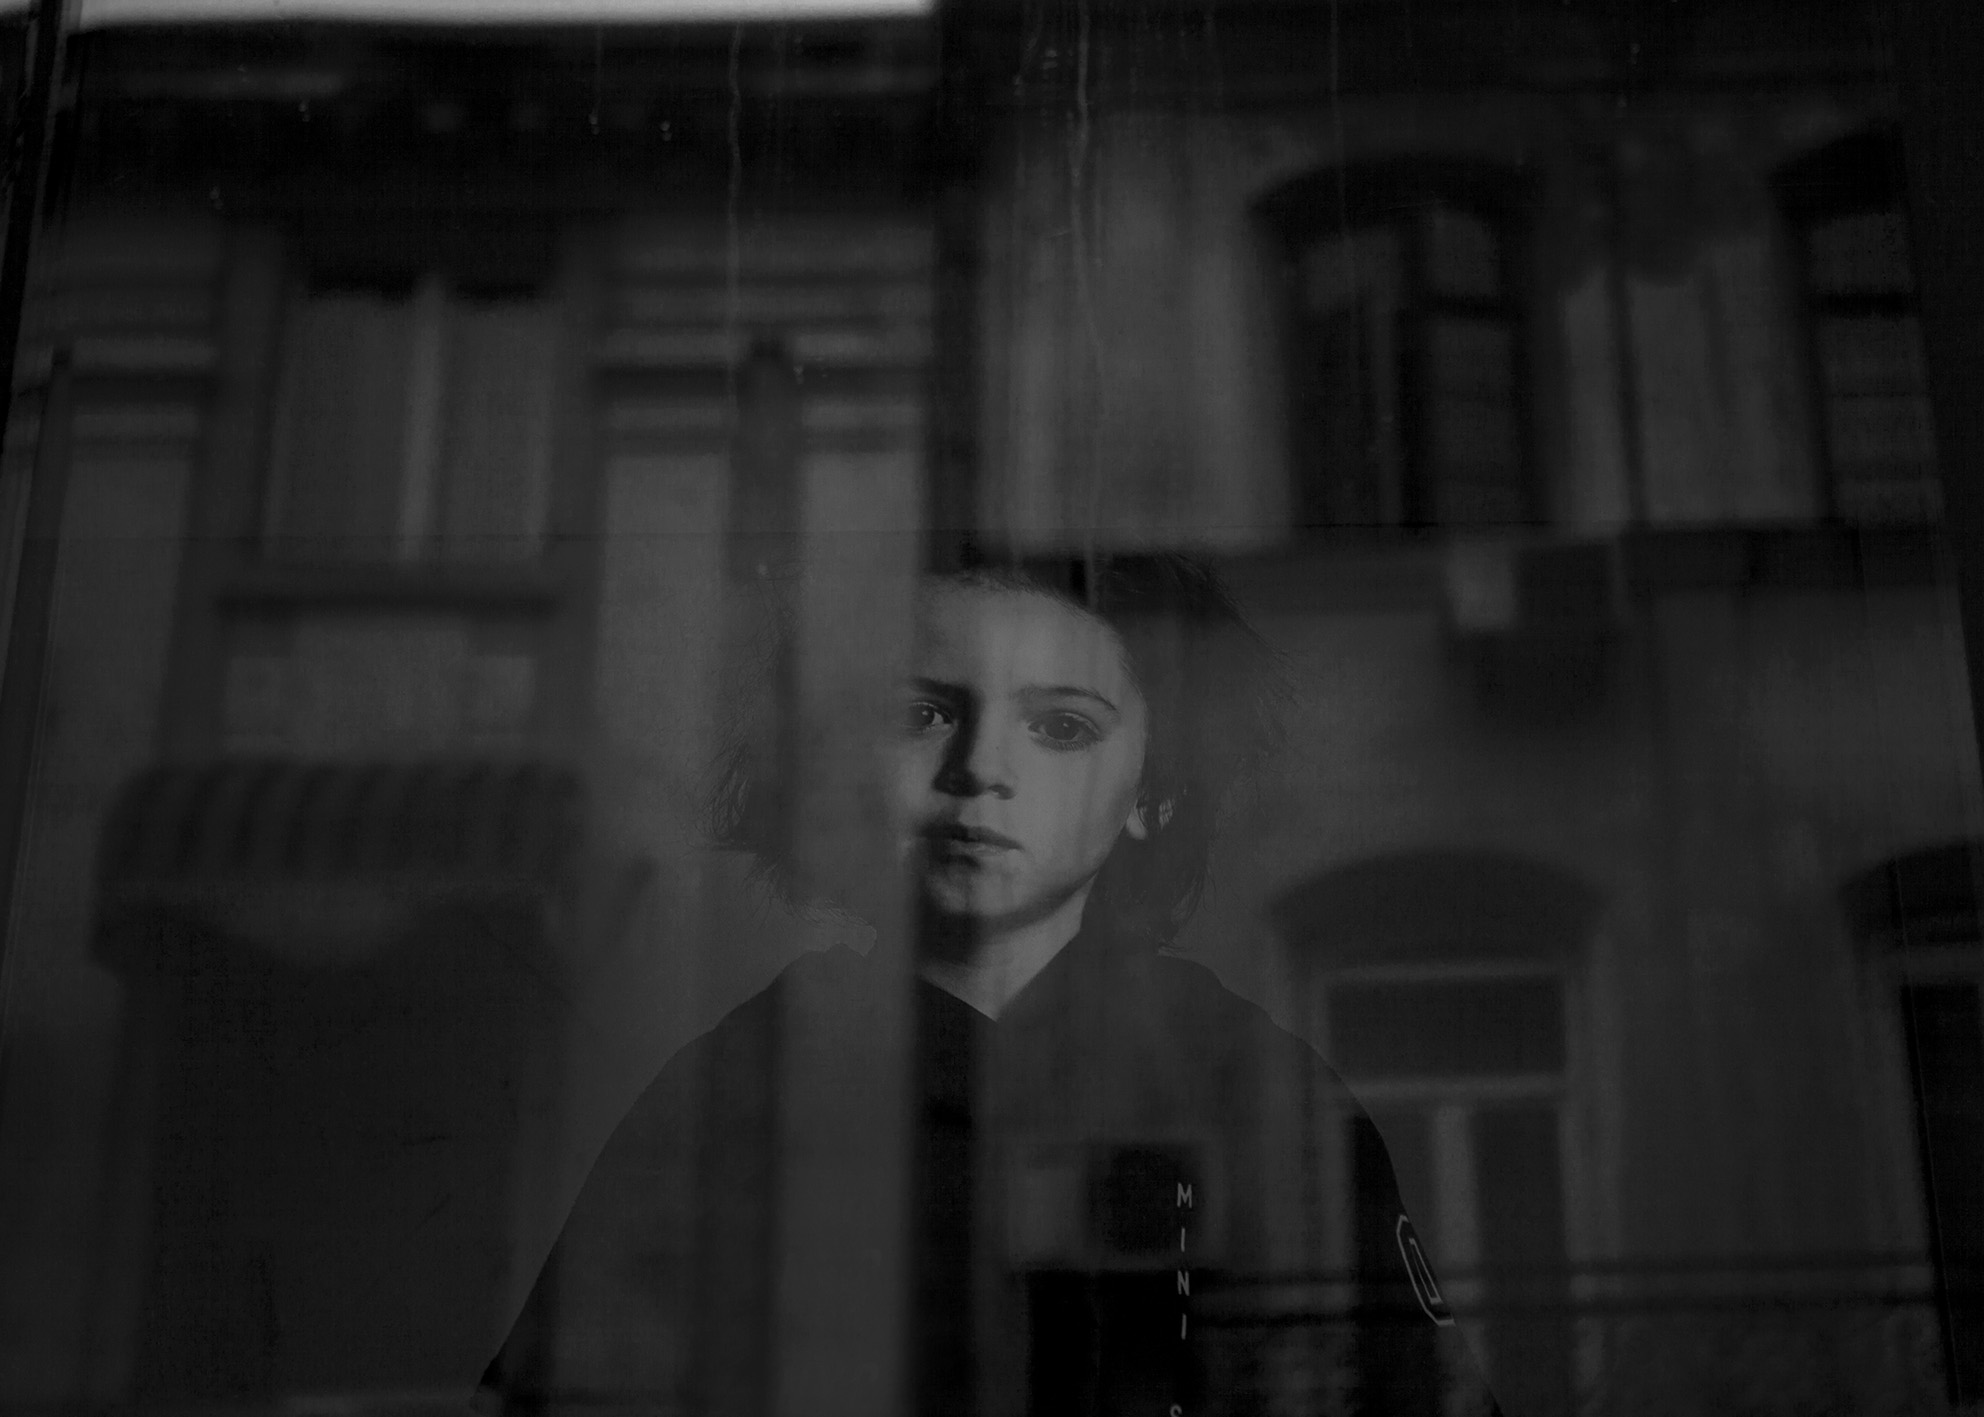 Yiorgos Assimakopoulos, Romania, common routes, project, photography